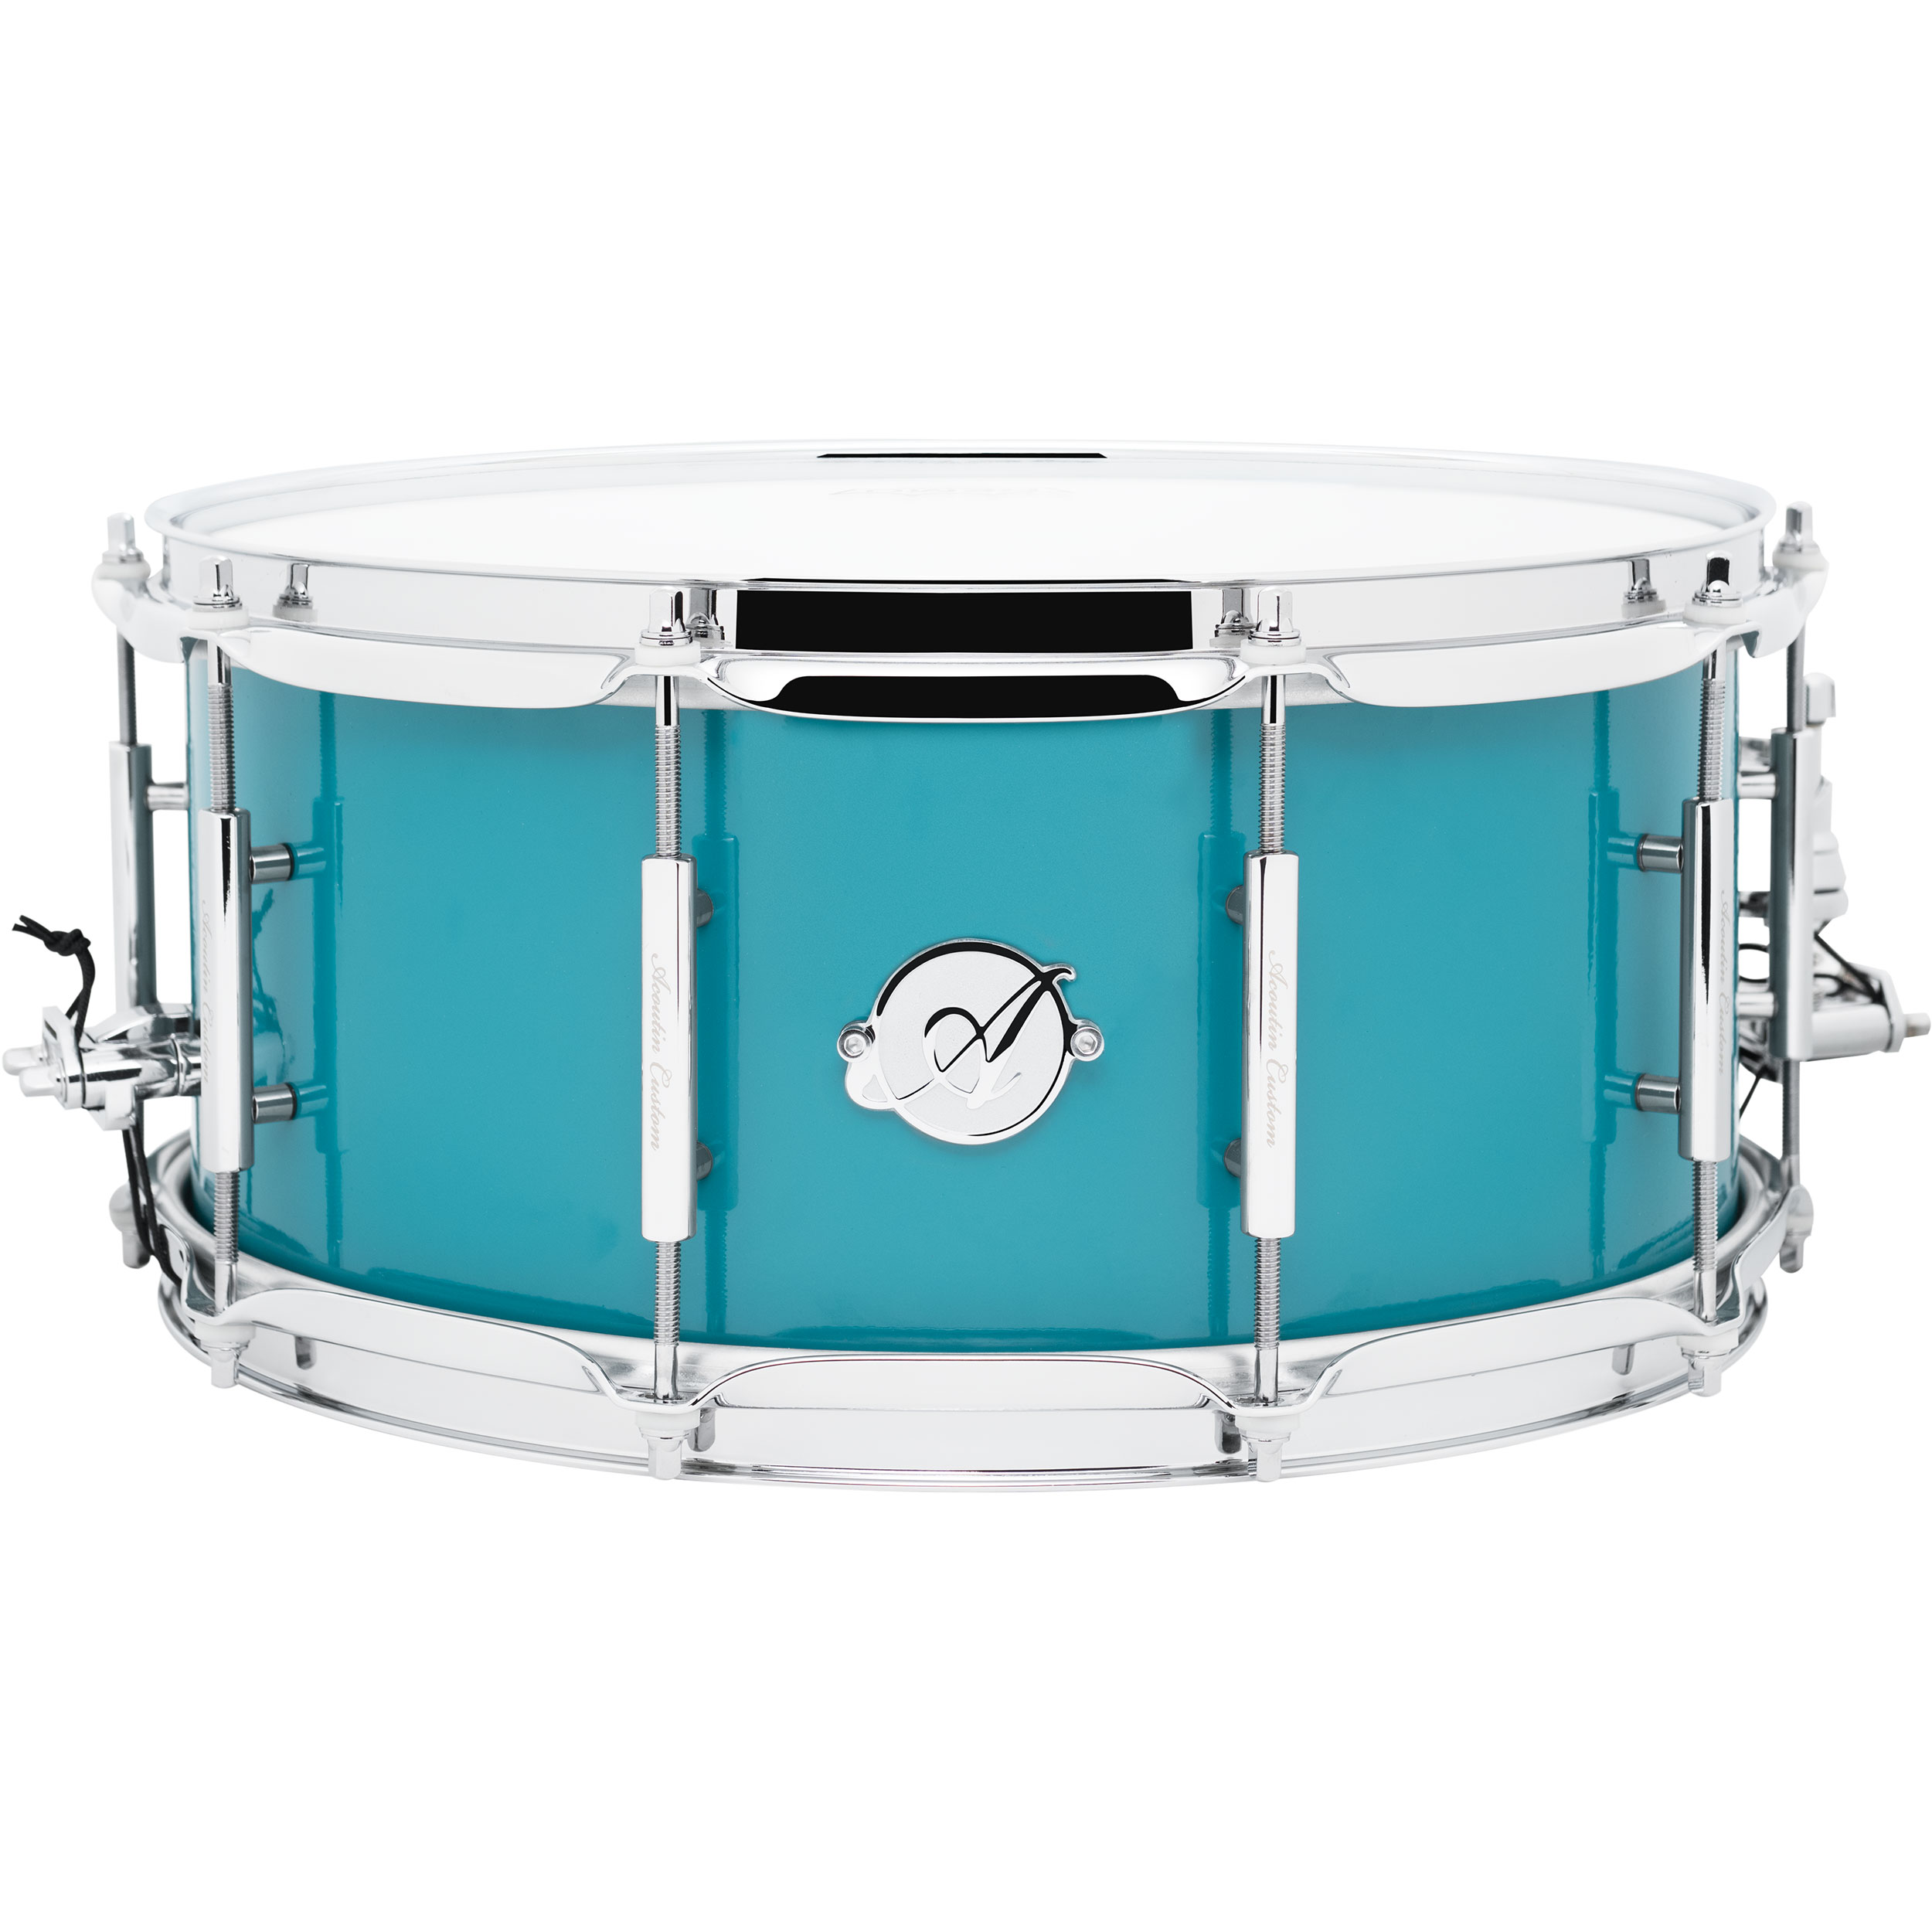 """Acoutin 6.5"""" x 14"""" Stainless Steel Snare Drum in Teal"""